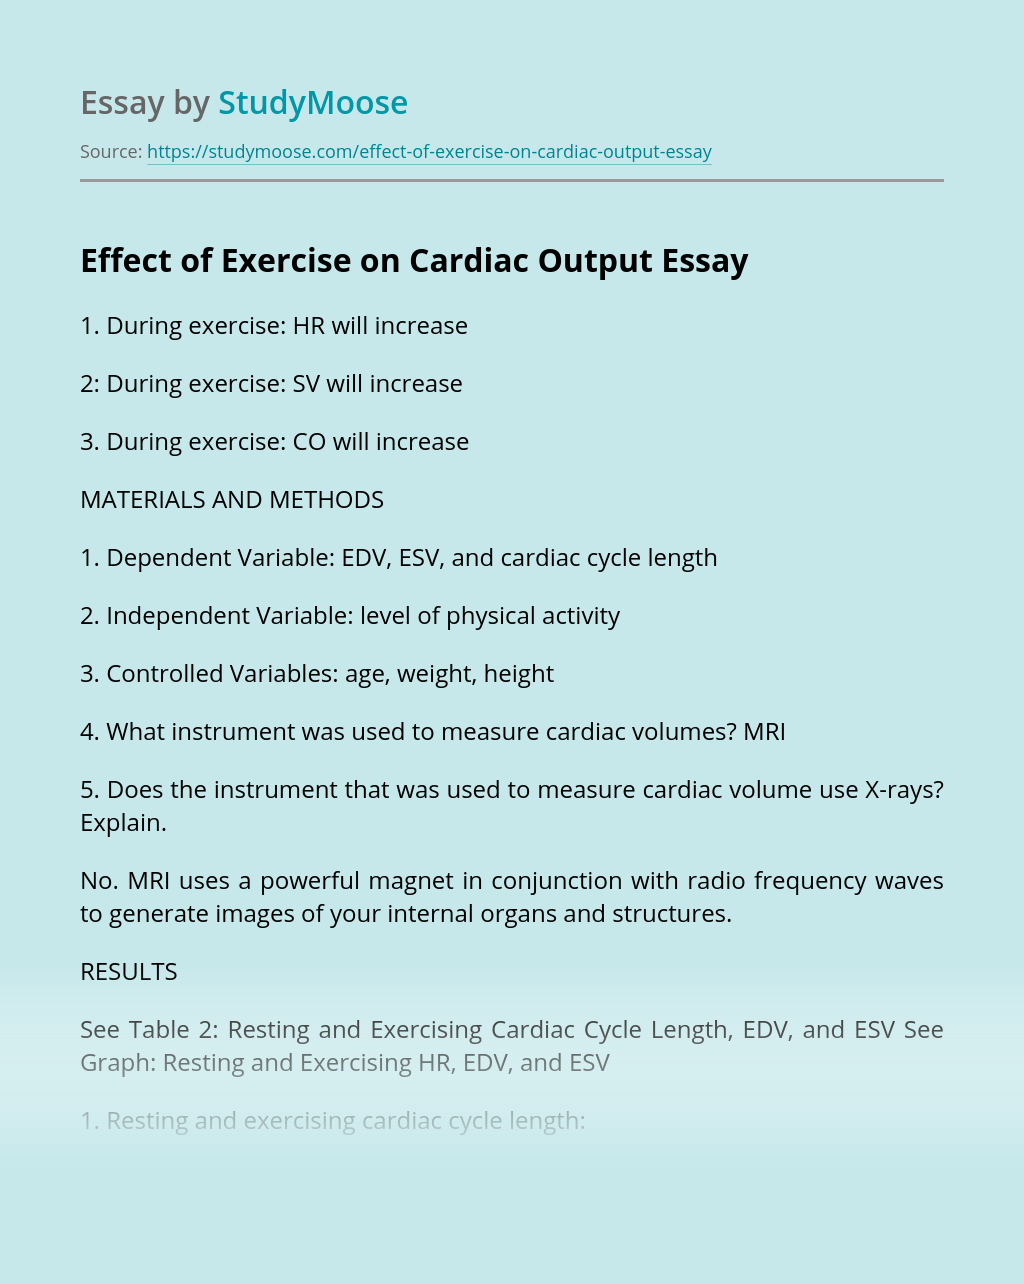 Effect of Exercise on Cardiac Output